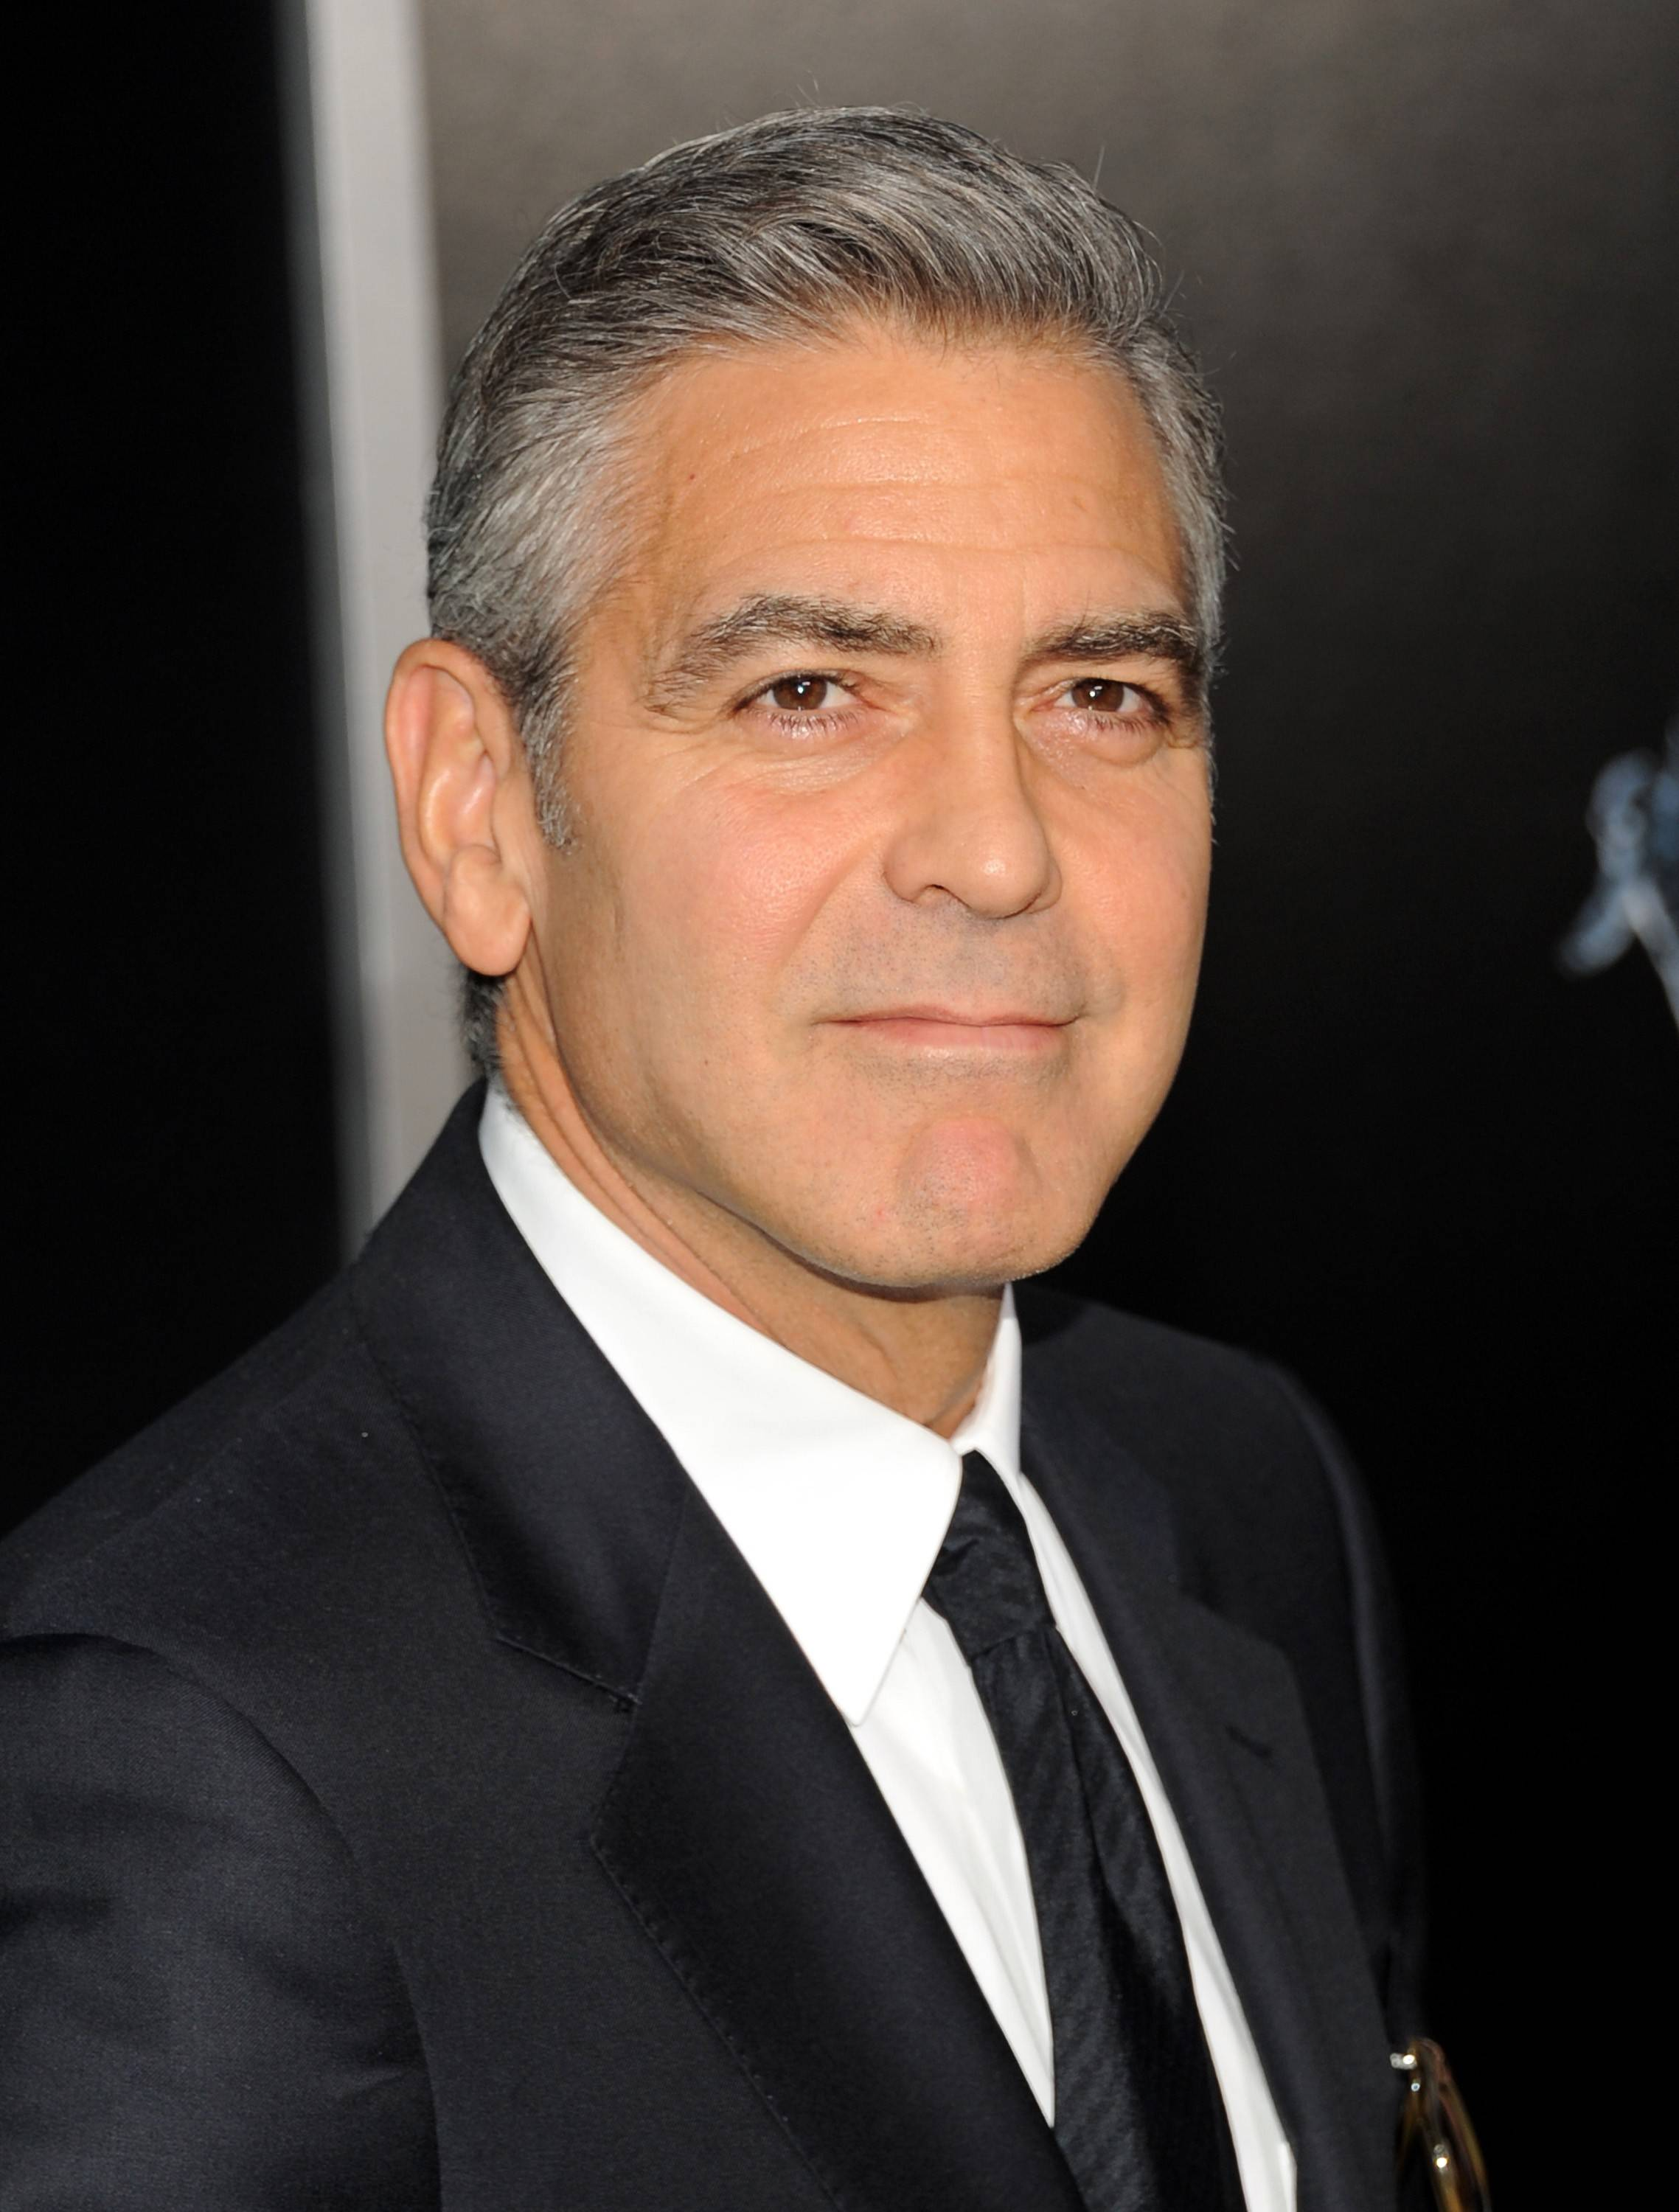 George Clooney might be getting hitched.